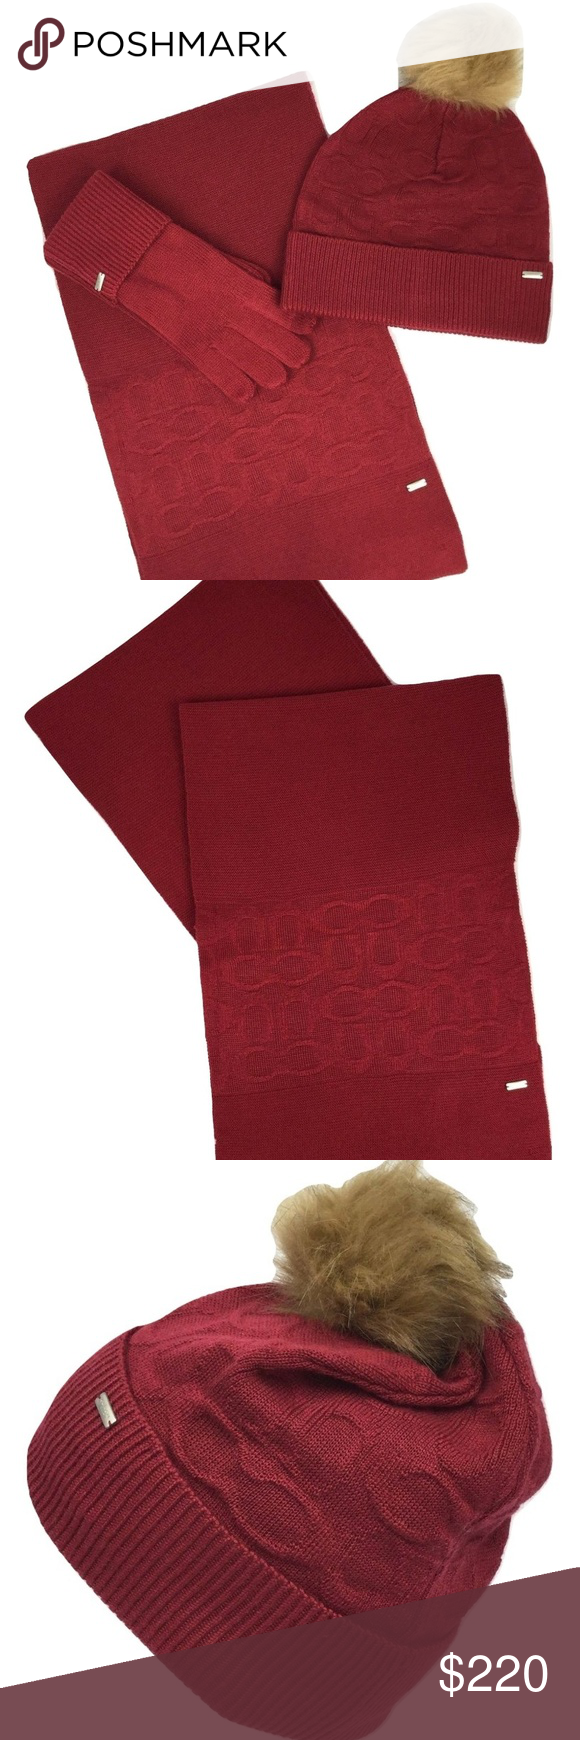 2206e2913 Coach Embossed Soft Red Scarf, Hat, Gloves Set SHIPS WITHIN 24 HOURS! 100